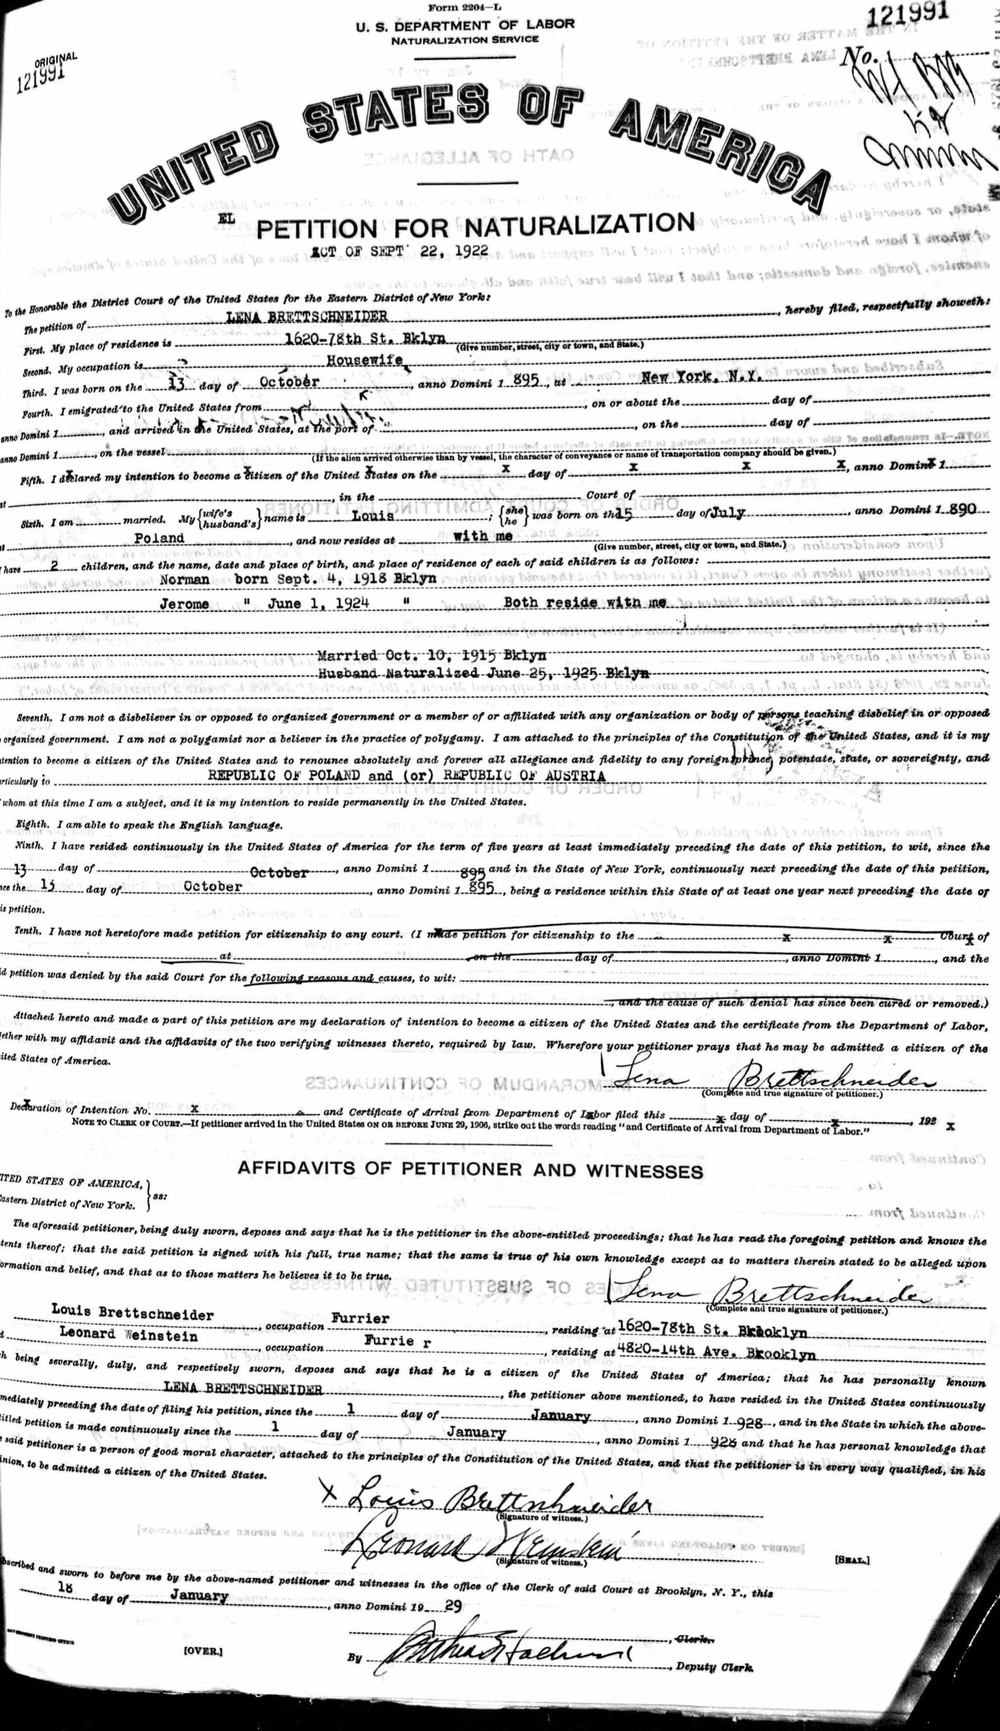 My great-grandmother's naturalization certificate.